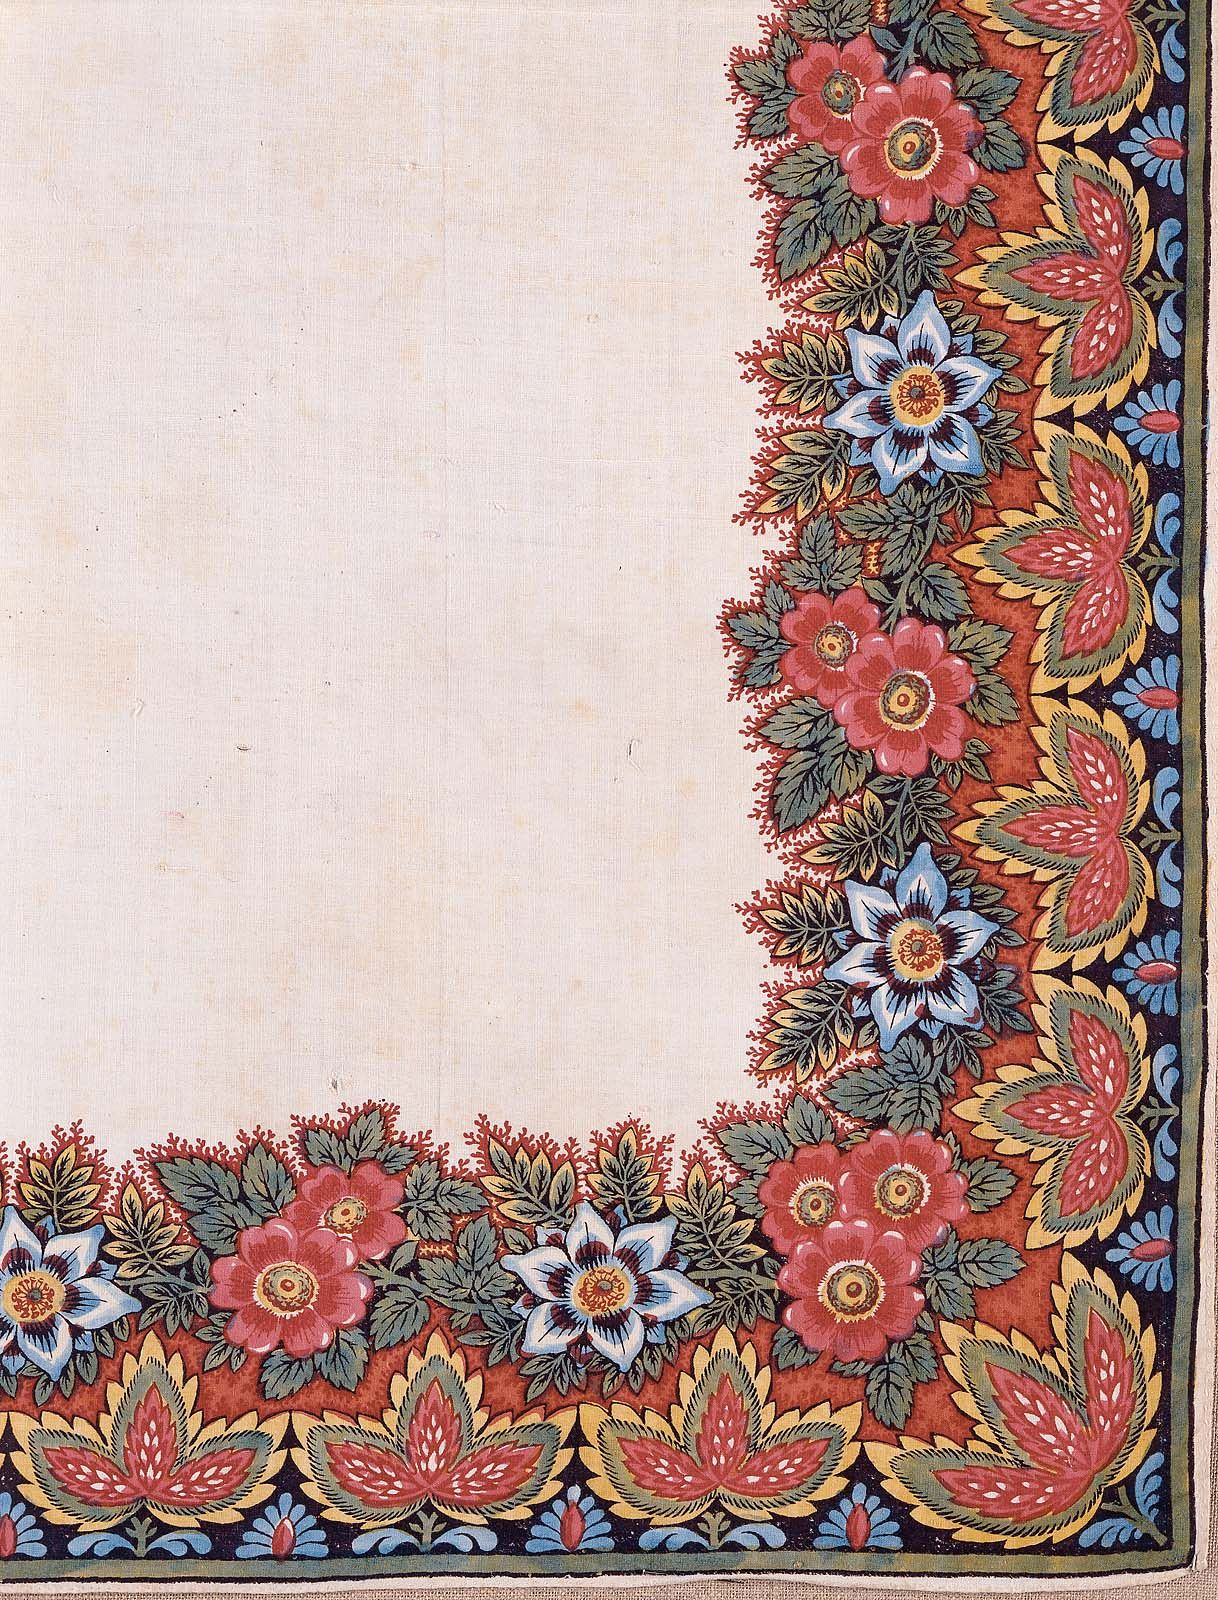 Stout muslin ground. Main field is plain. Wide border showing red roses and blue daisies (?) and a narrower outer border showing conventionalized red, green and yellow blossoms and blue daisies. Wood block print. Cotton browned and stained.